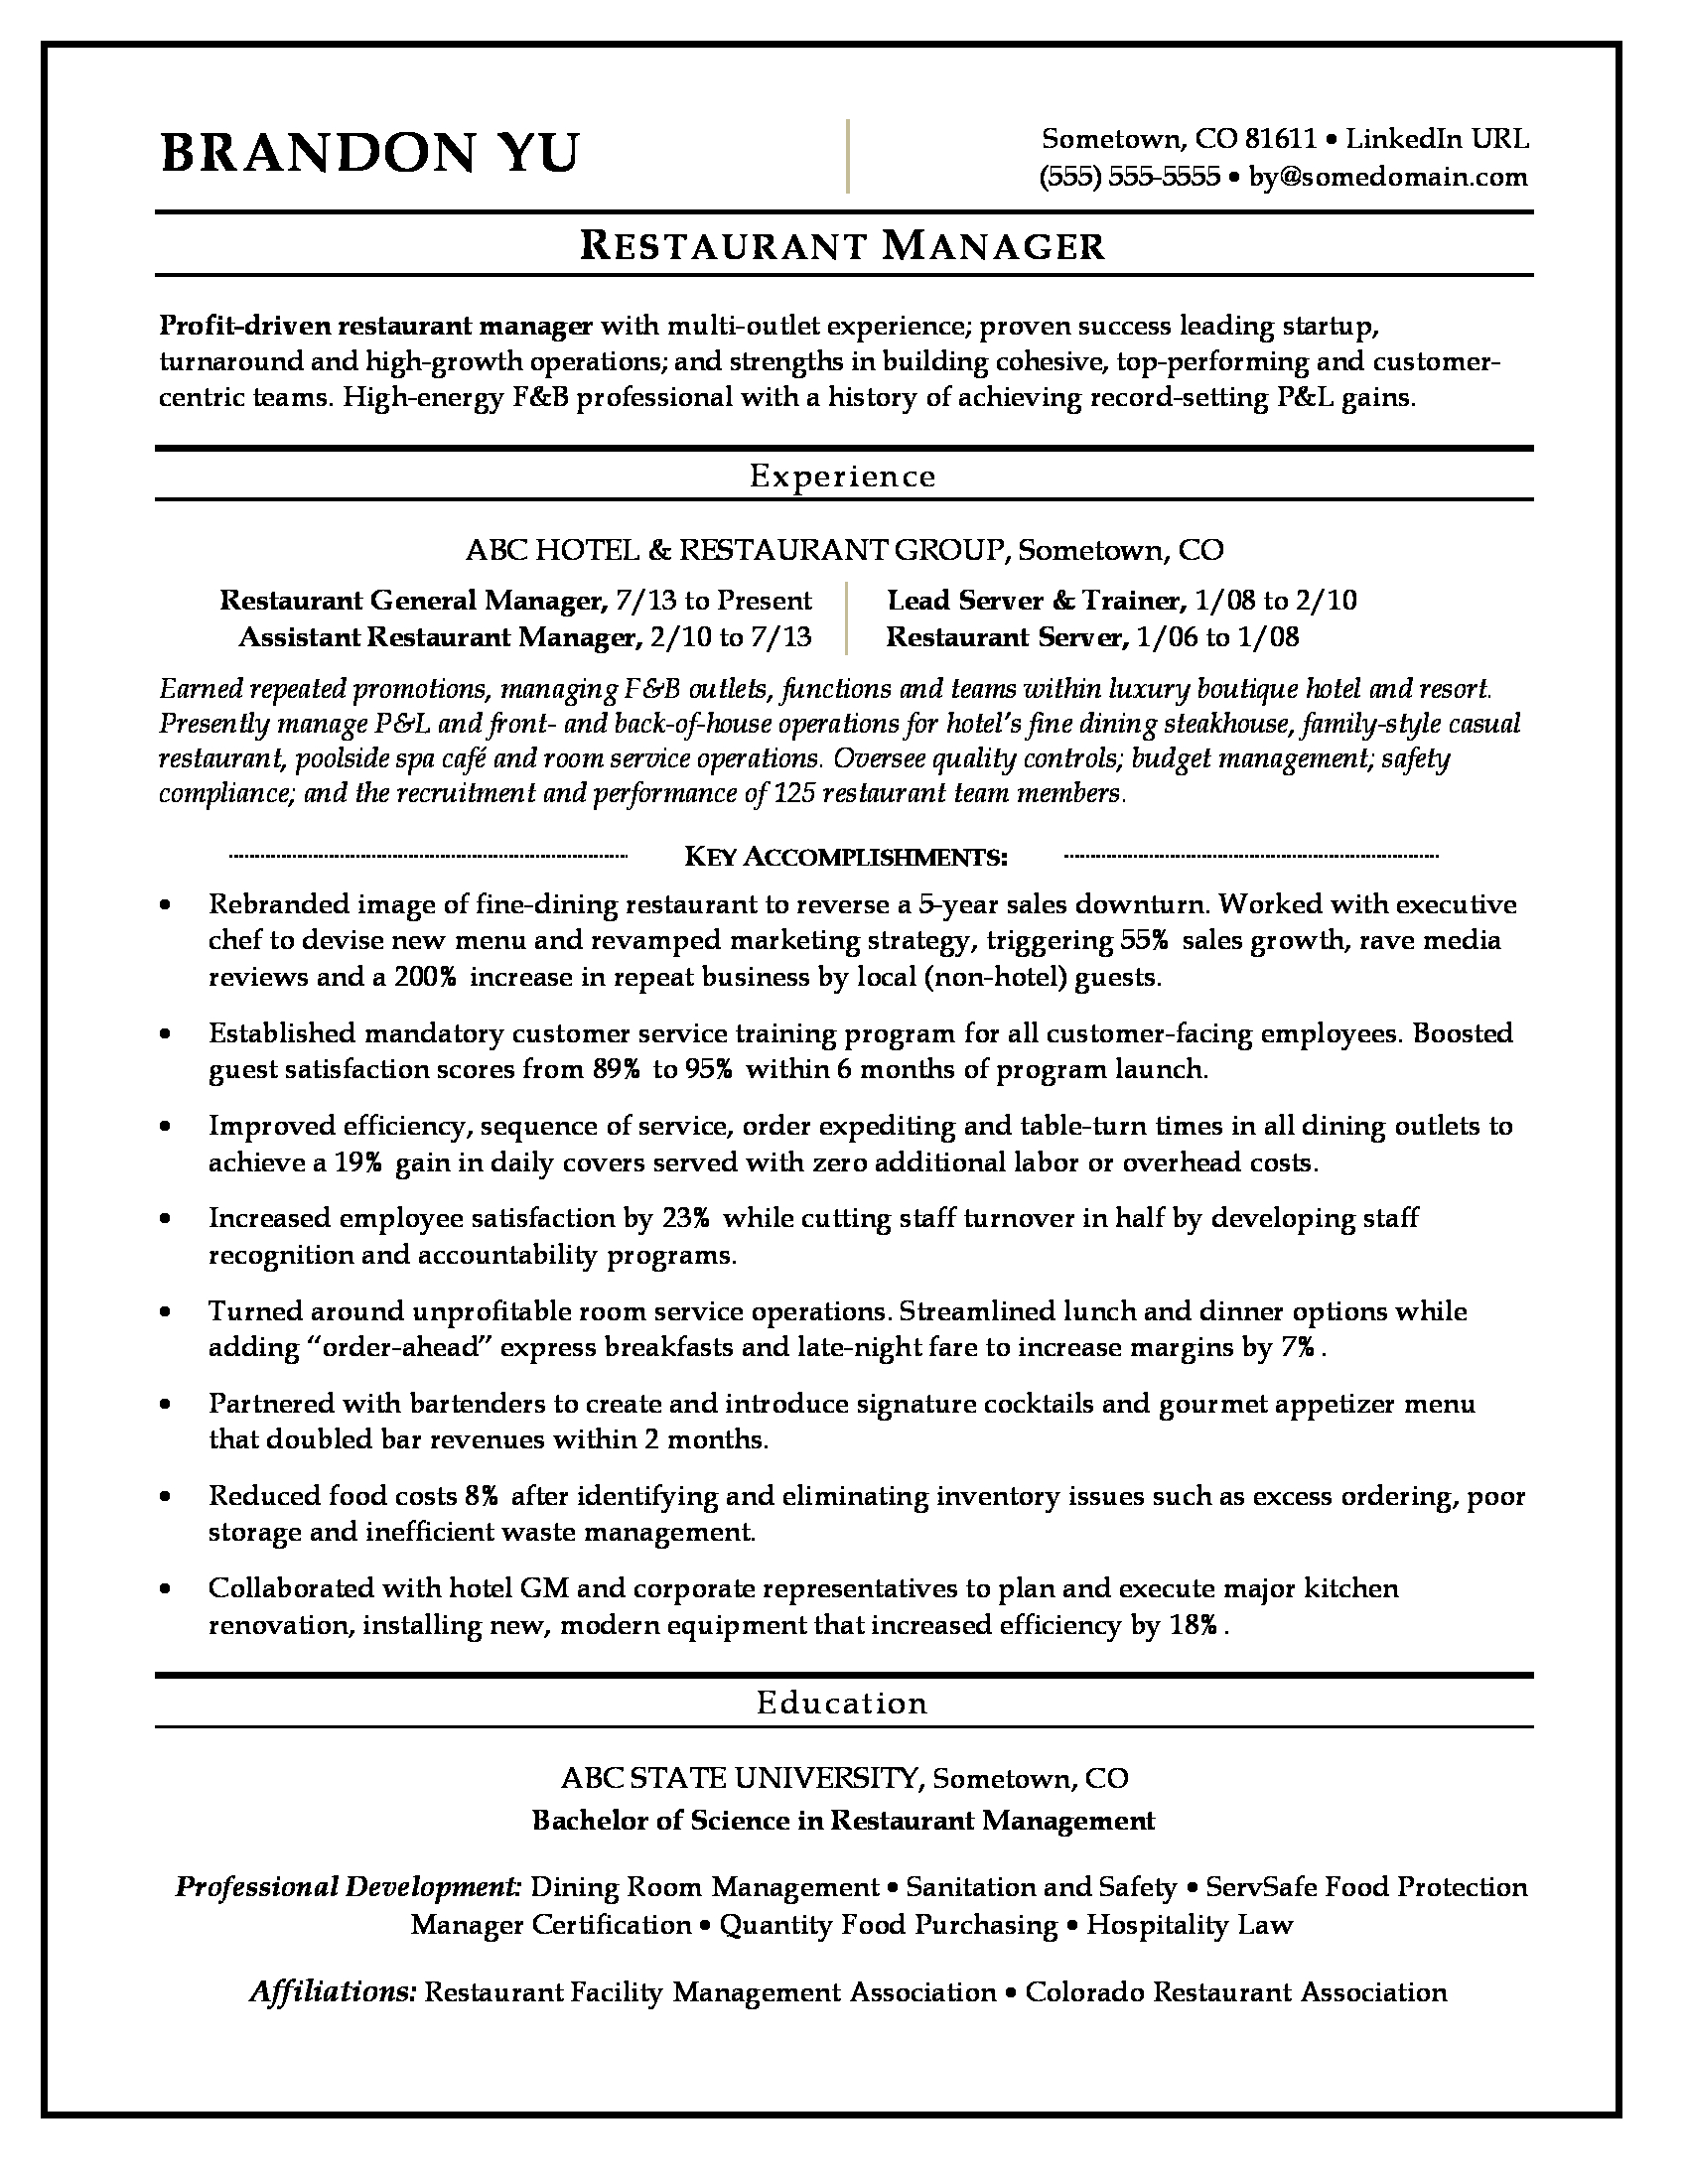 sample resume for restaurant hospitality